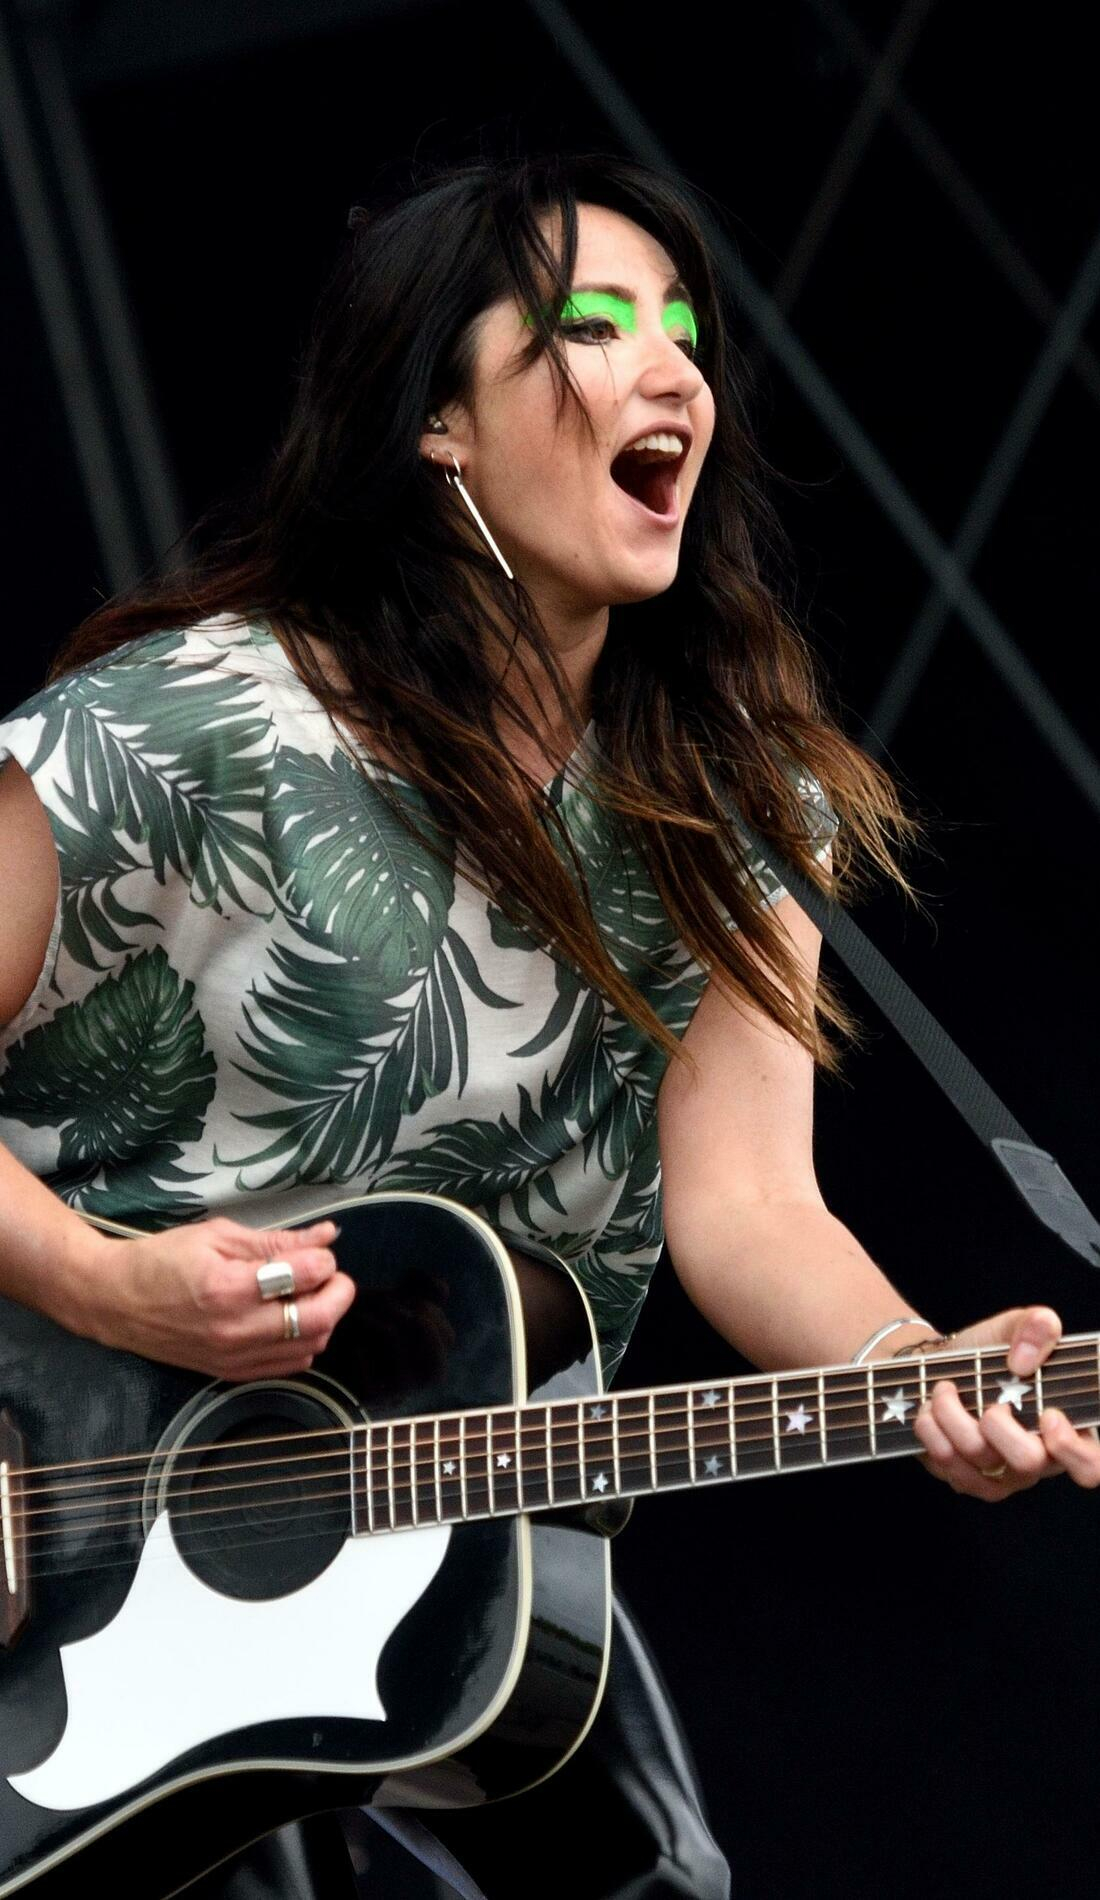 A KT Tunstall live event